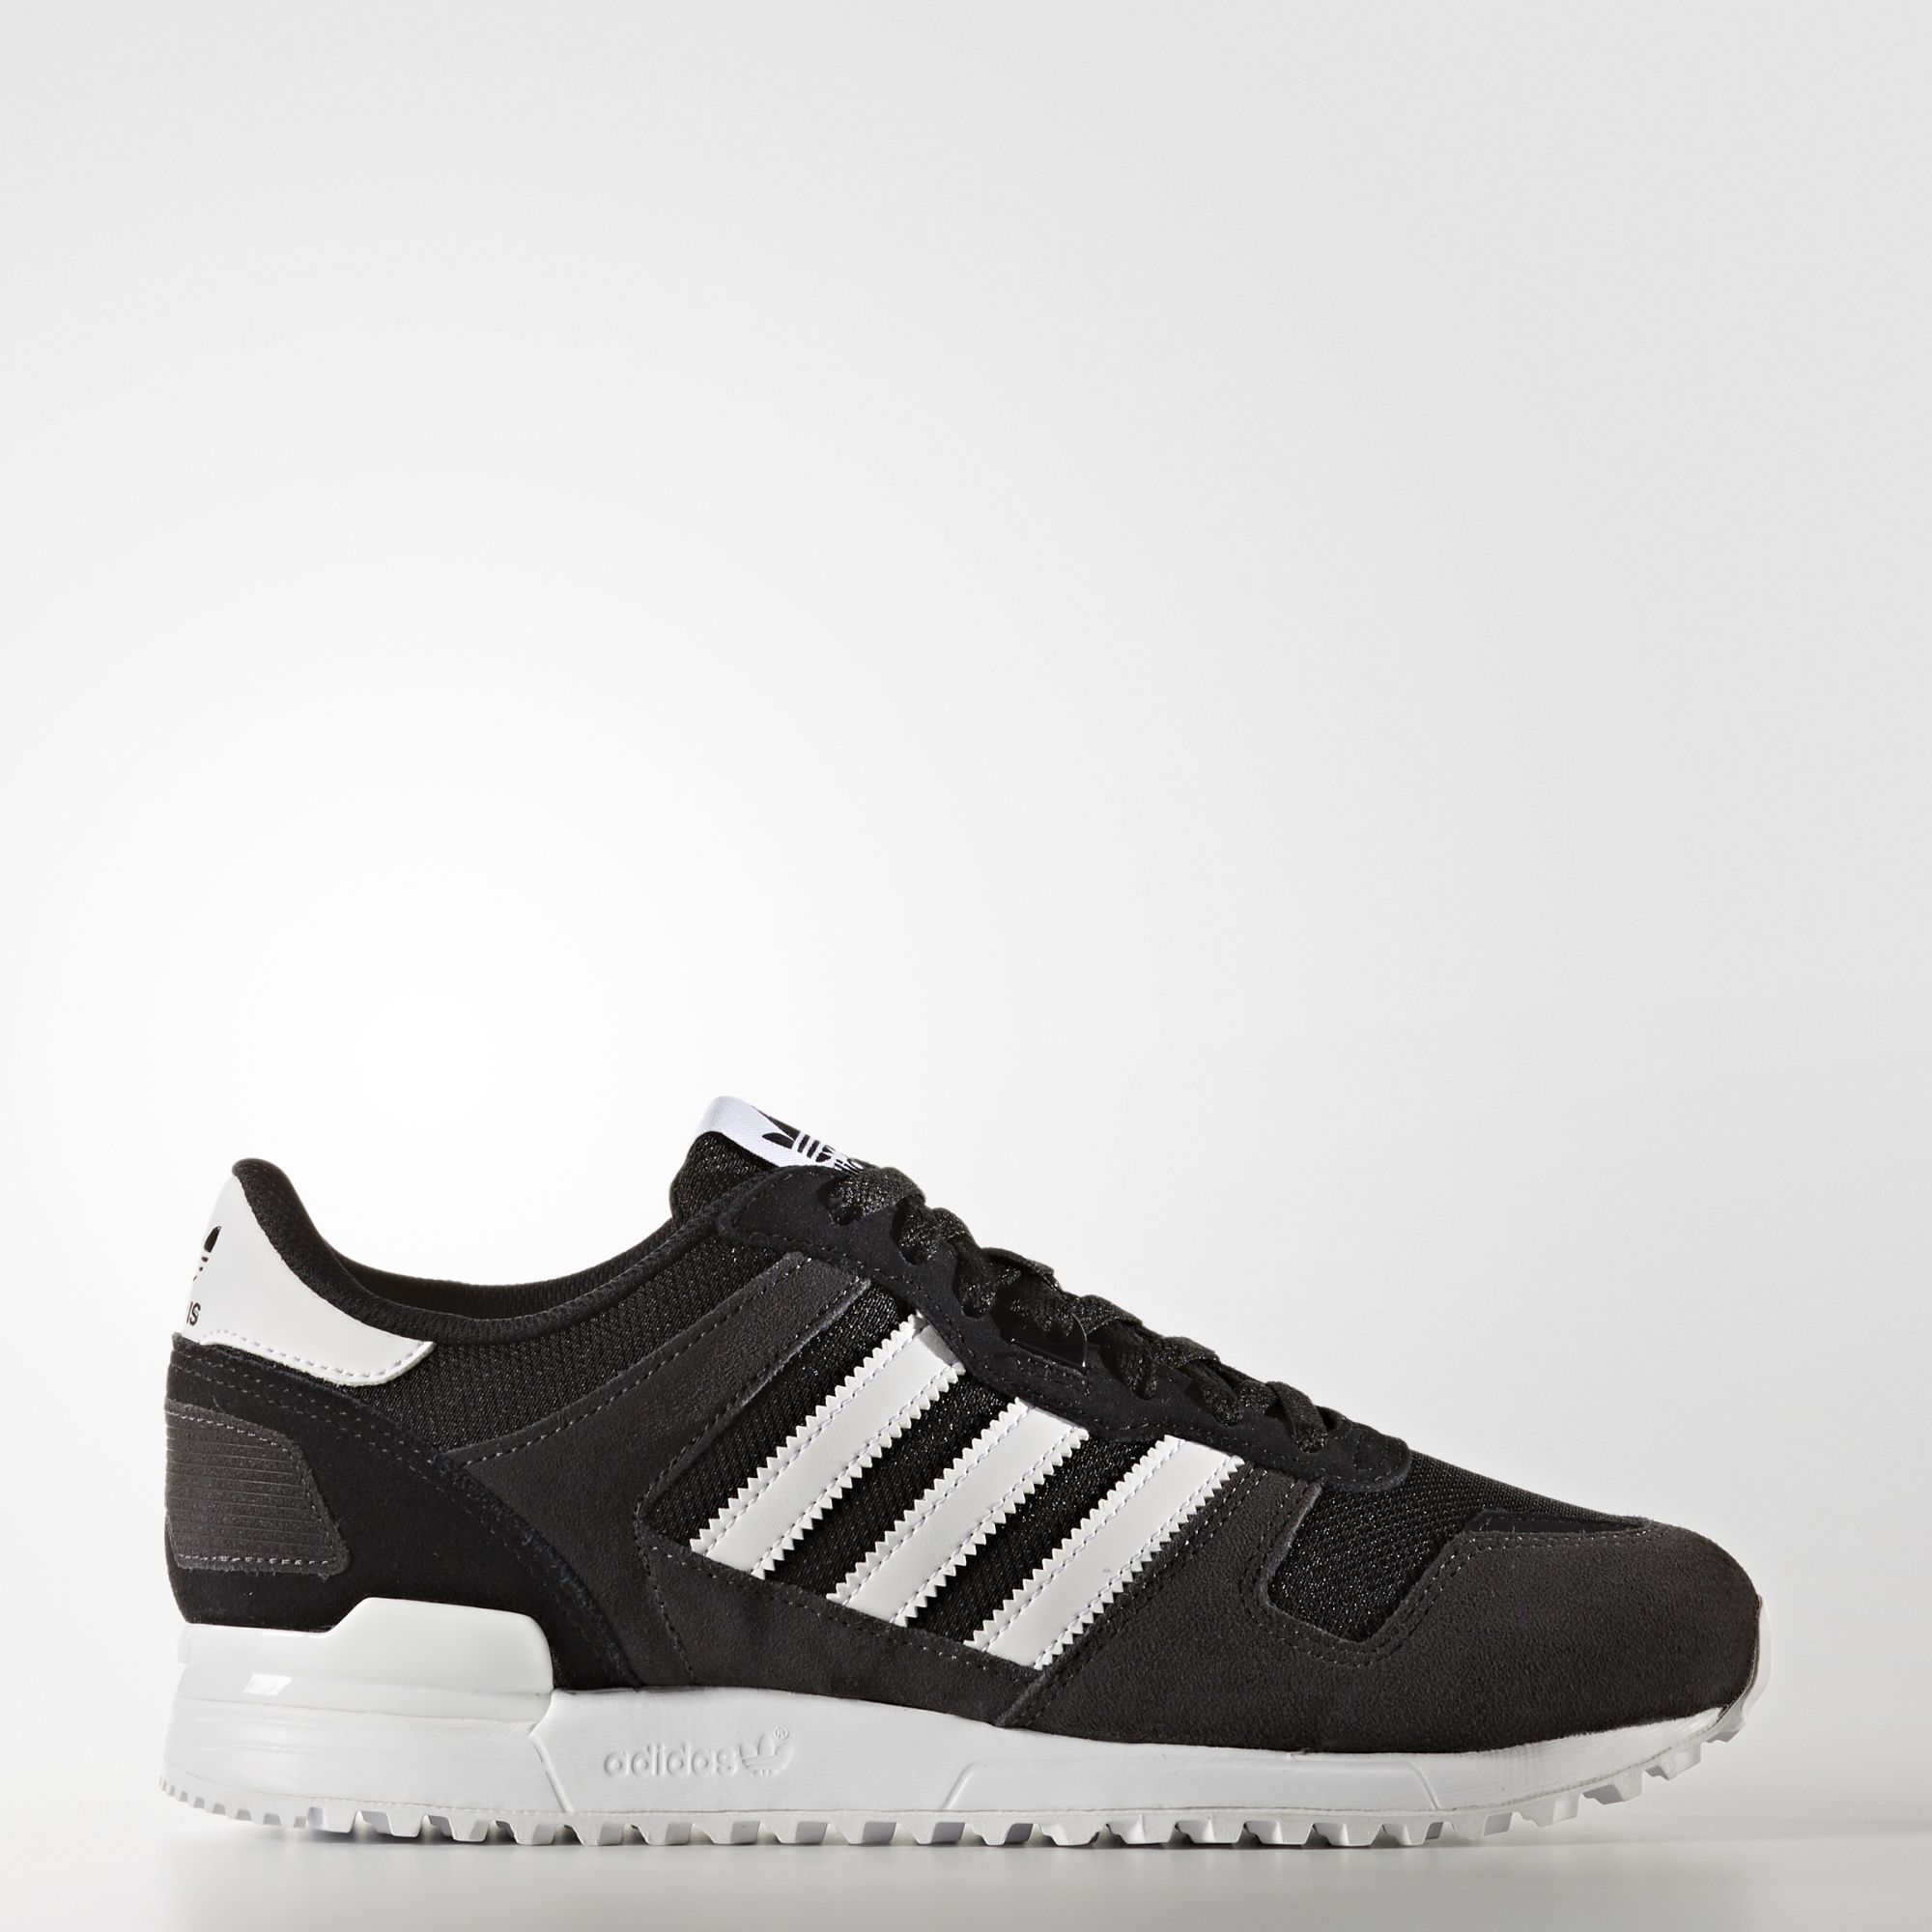 03b3afcc0bbc3 Inspired by the original ZX 700 distance runner of the  80s